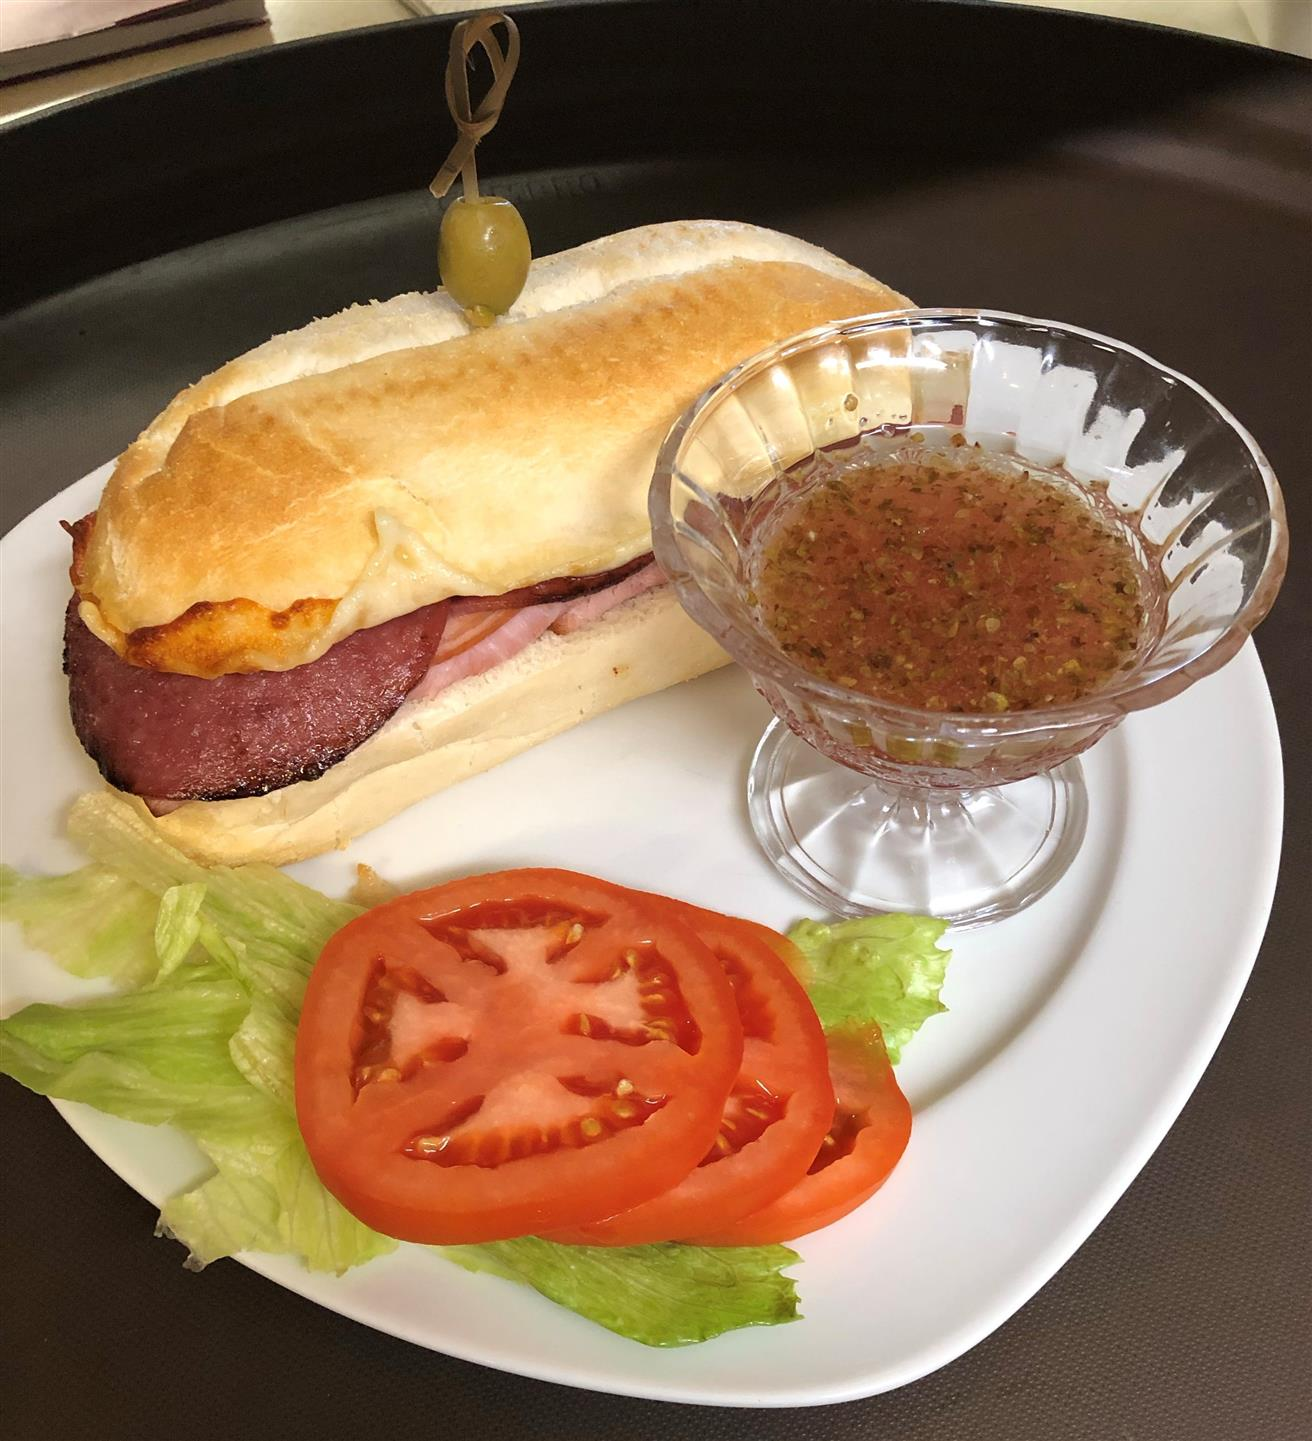 Ham, salami, provolone cheese, lettuce and tomato served oven toasted sandwich with tomatoes and lettuce on the site